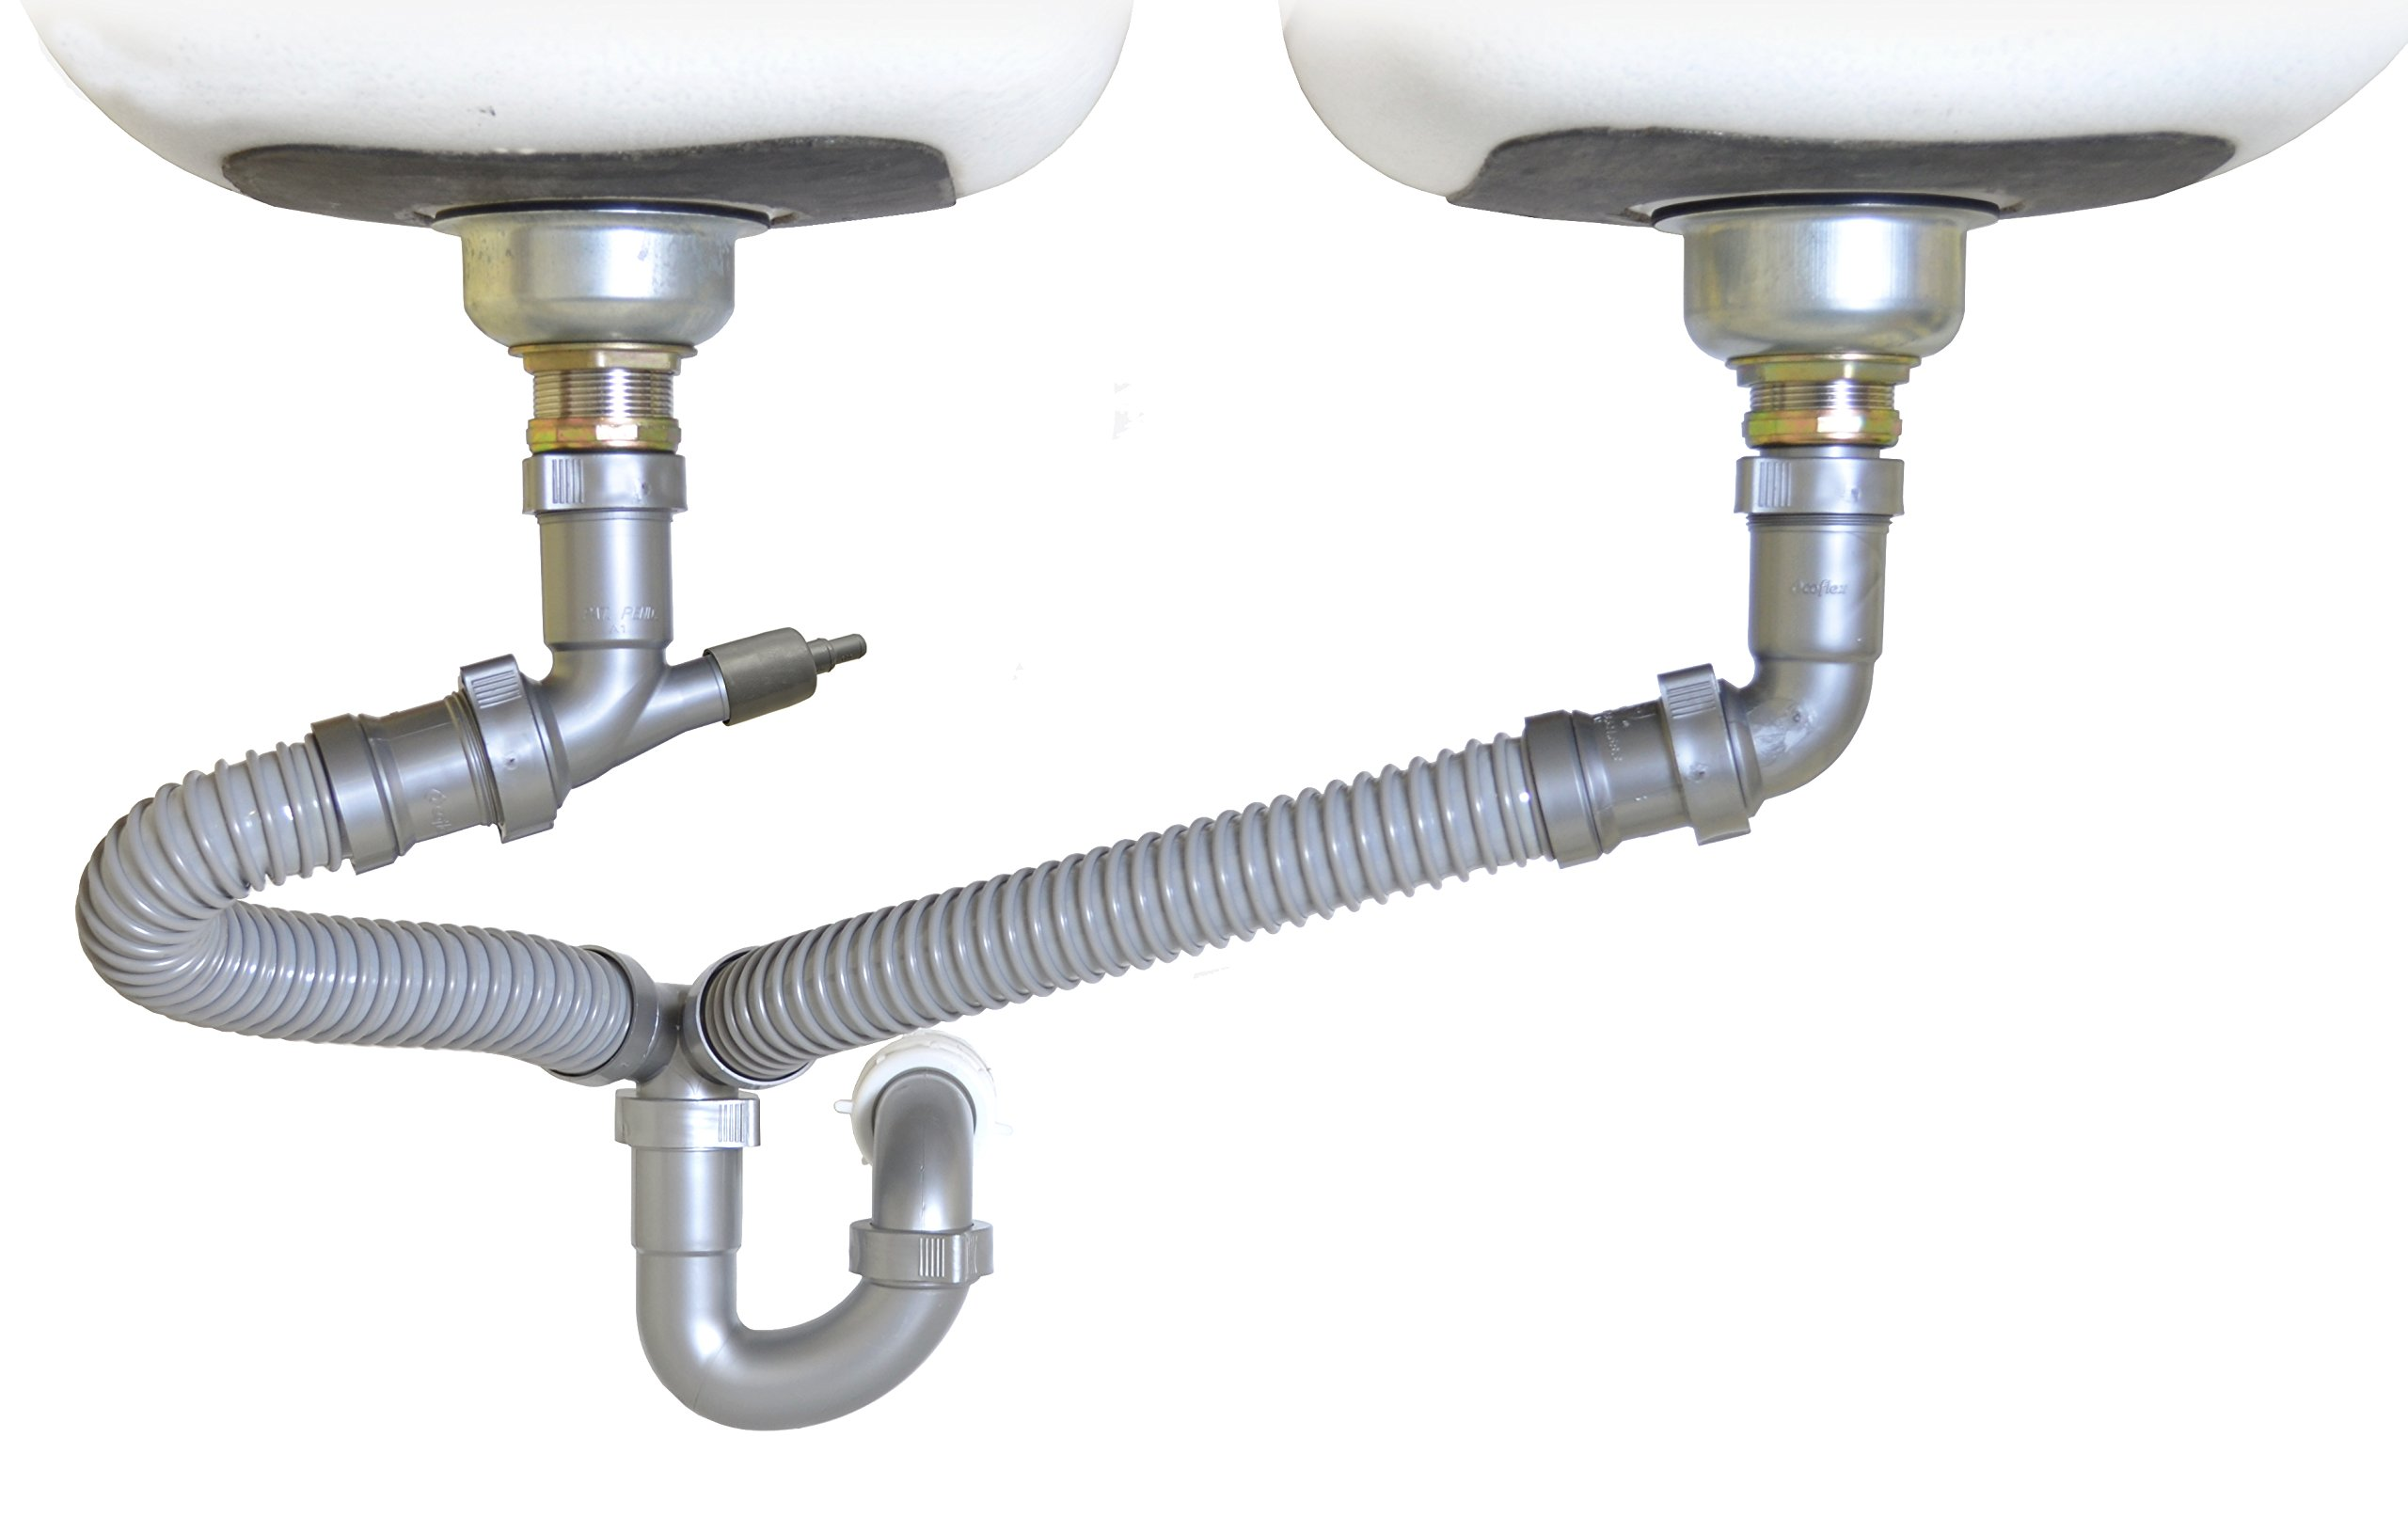 Snappy Trap 1 1/2'' All-In-One-Drain Kit for Double Bowl Kitchen Sinks by Coflex